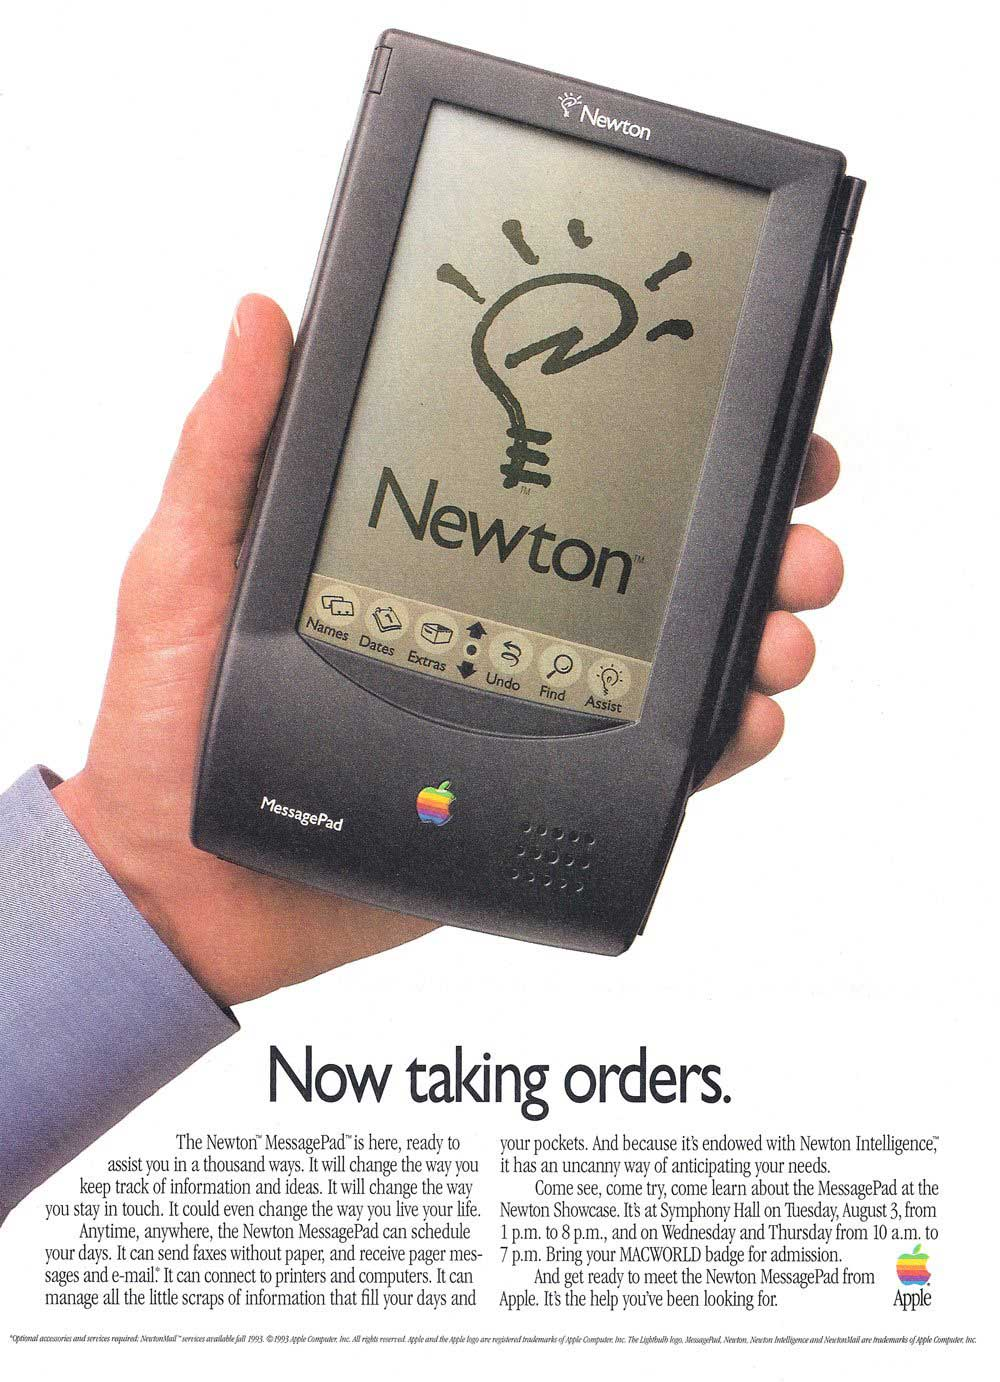 The original Apple Newton